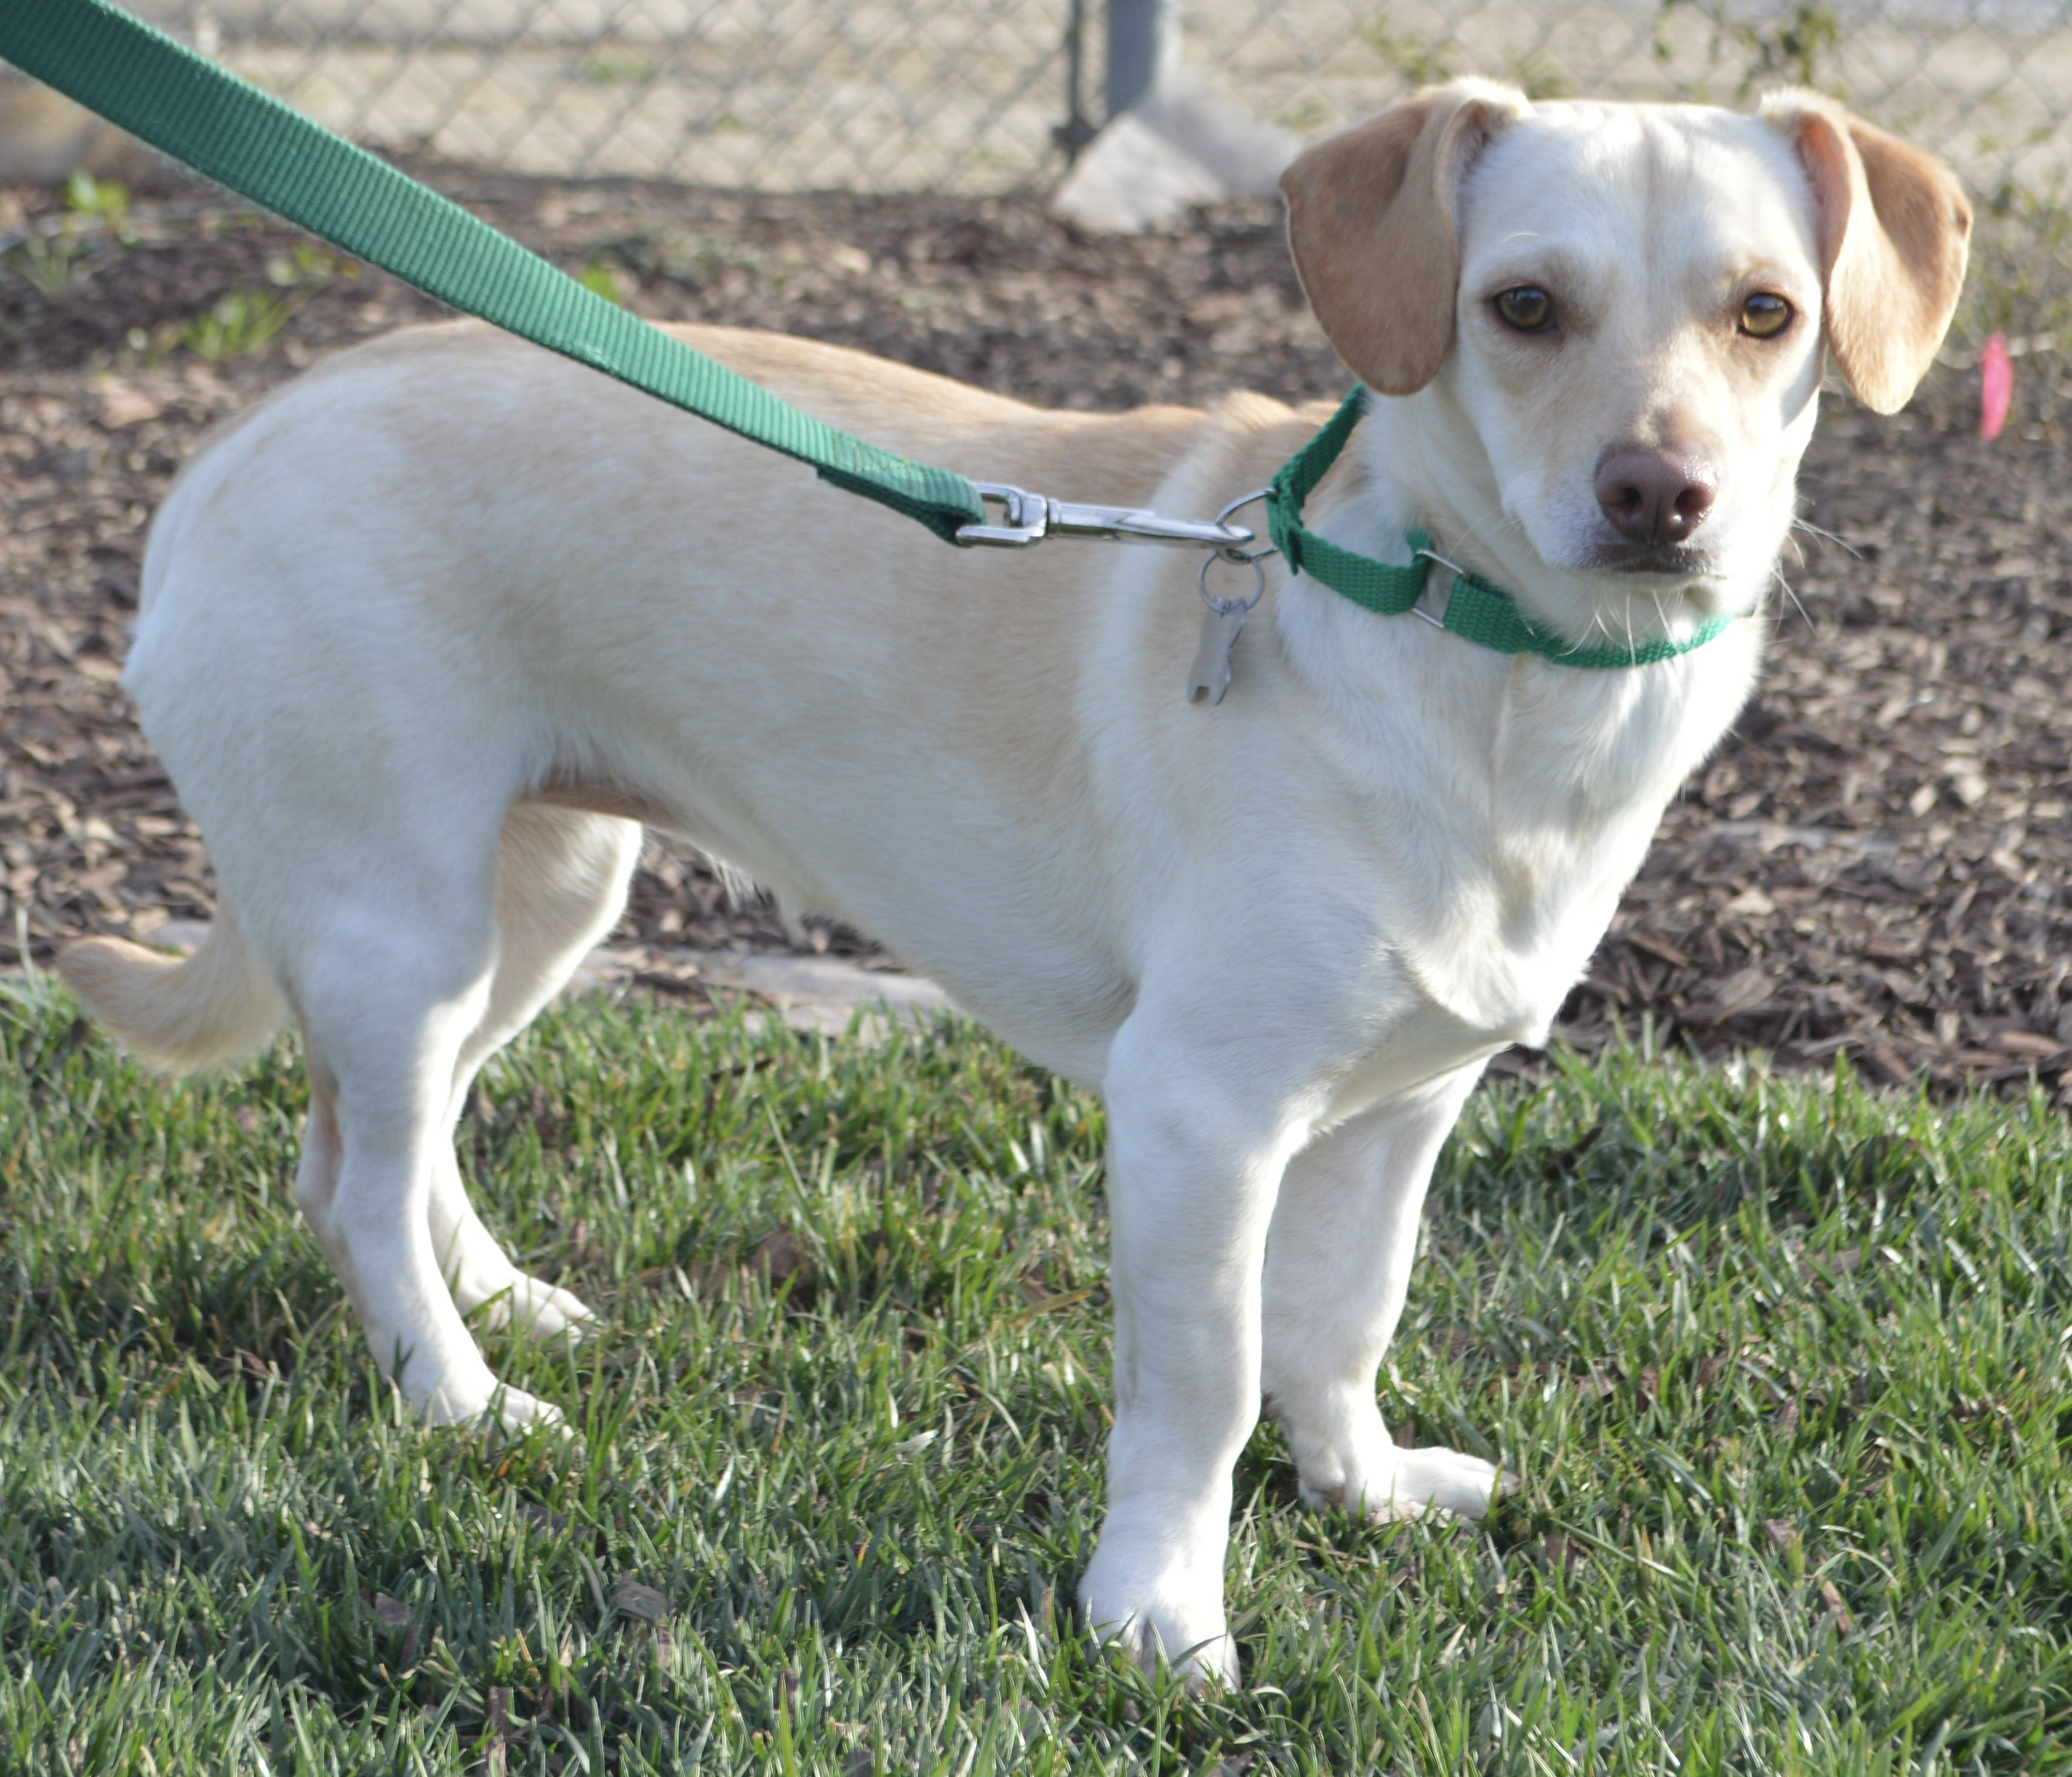 Doxle Dog For Adoption In Palo Alto Ca Adn 454497 On Puppyfinder Com Gender Female Age Young Dog Adoption Dogs Adoption